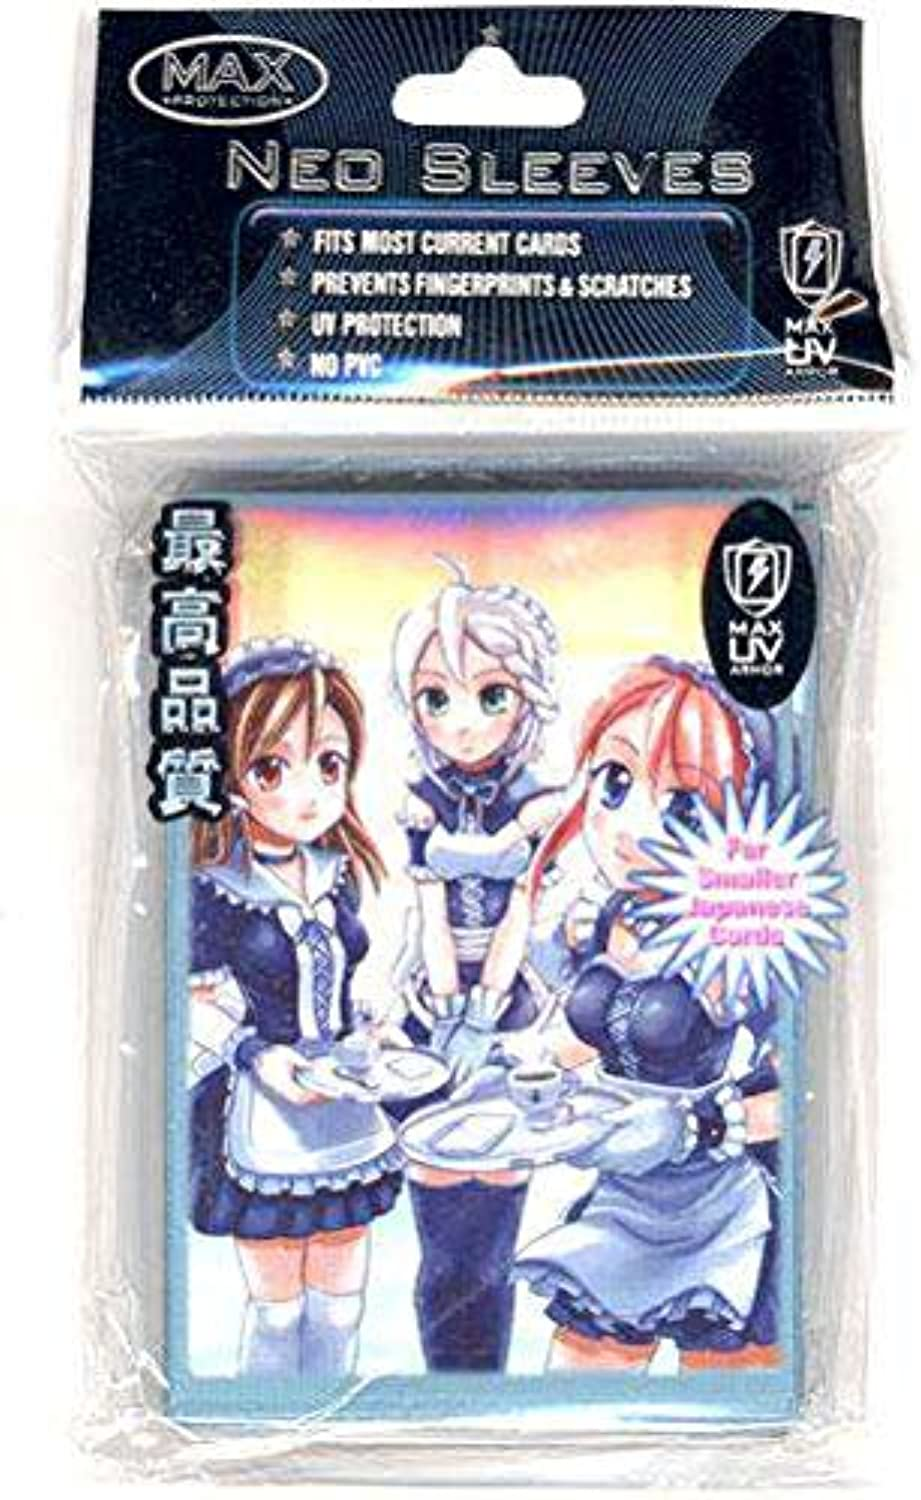 en stock YuGiOh MAX Projoection Projoection Projoection Gaming Coched Sleeves Maids Neo 50 Count by Max Projoection  Web oficial